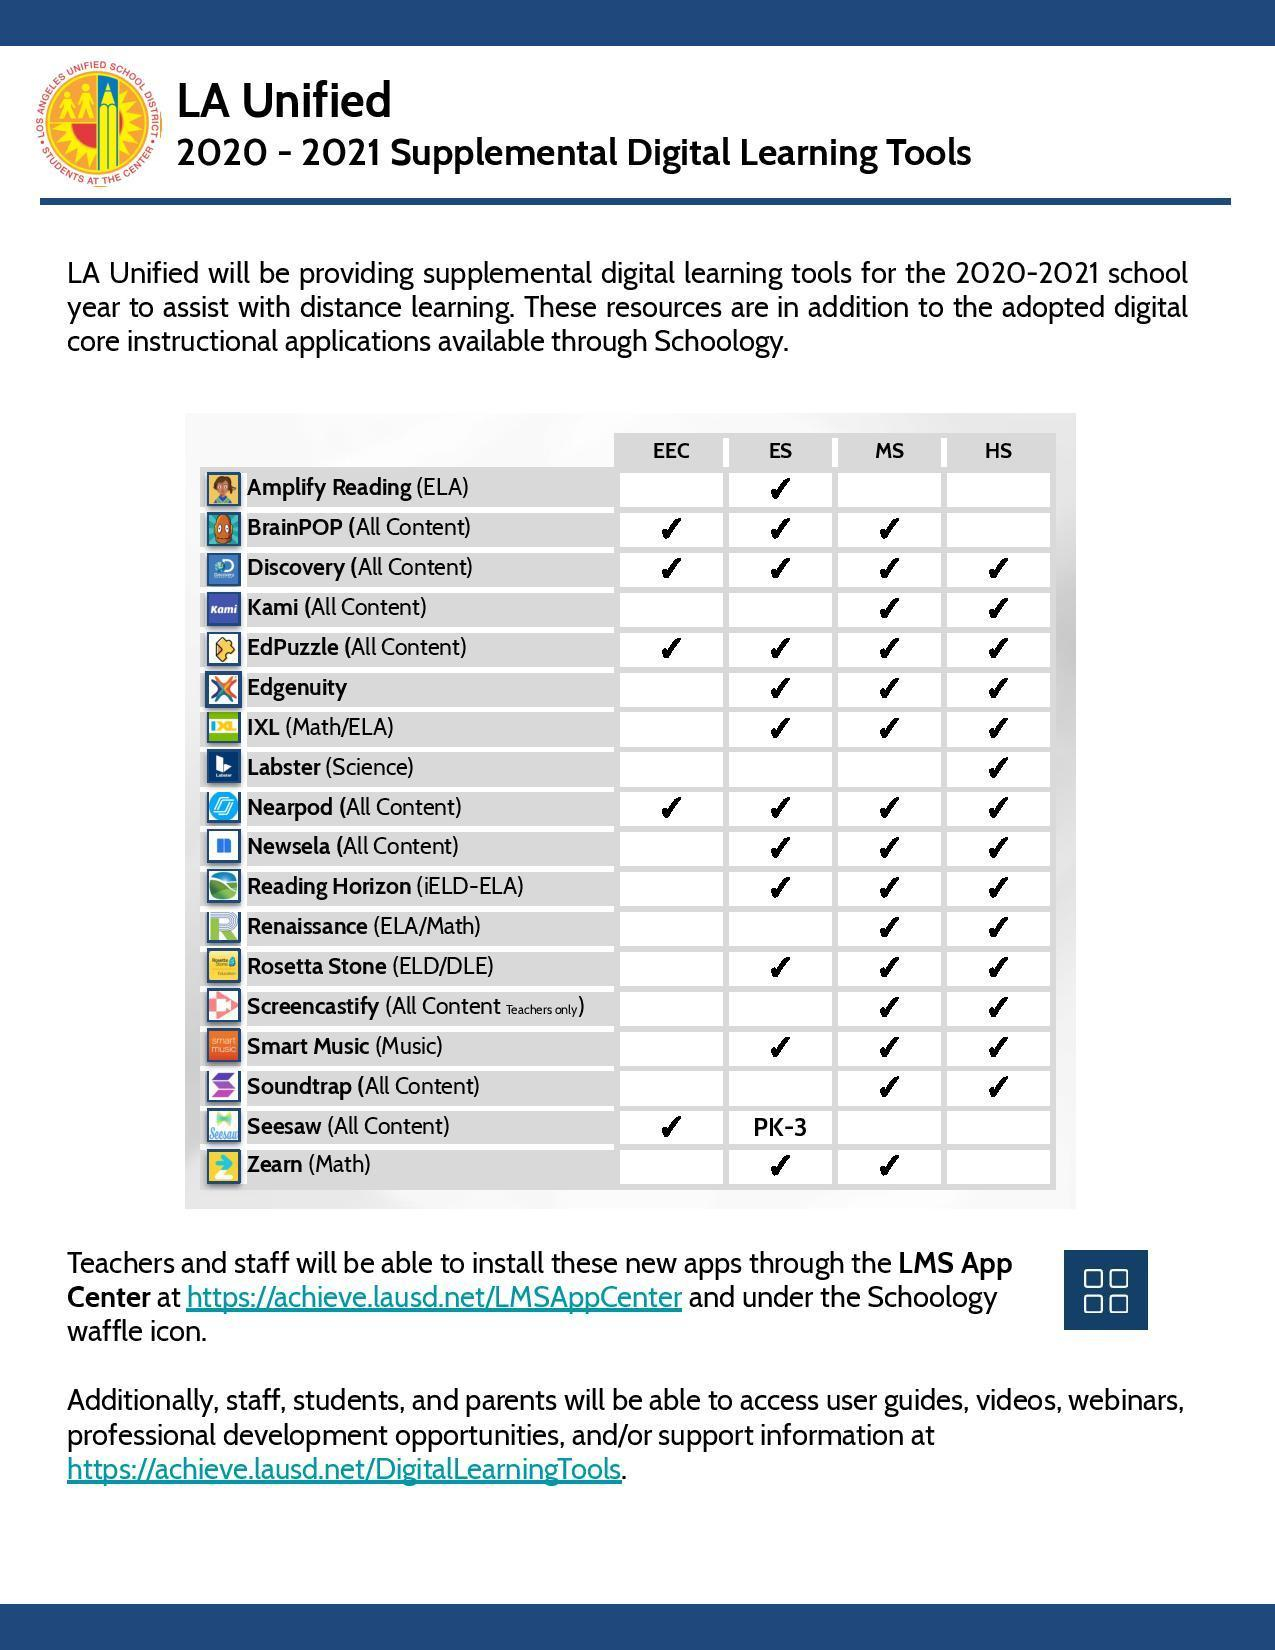 Lausd Supplemental Digital Learning Tools For 2020-2021